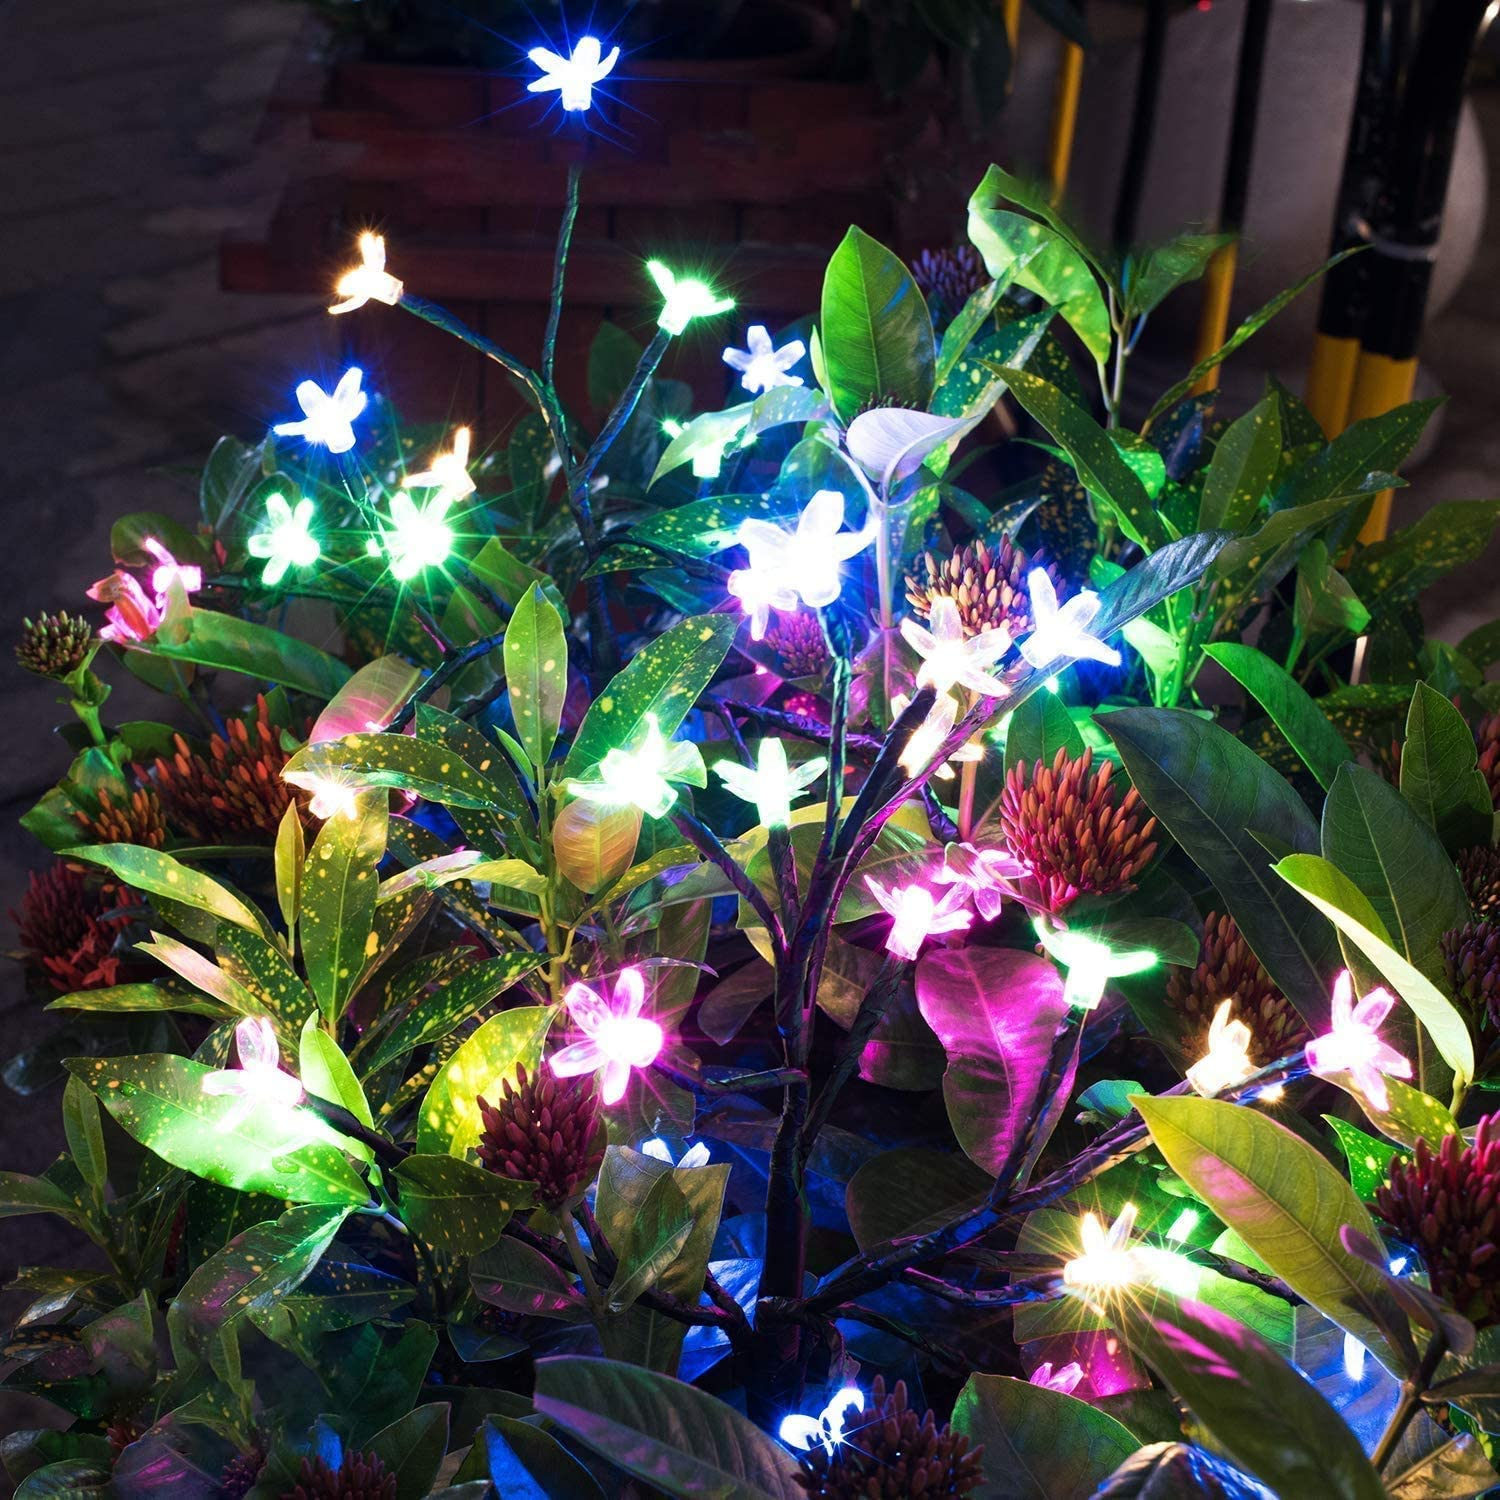 Amazon Com Solar Garden Decorative Lights Outdoor 2 Pack Beautiful Led Solar Powered Fairy Landscape Tree Lights Two Mode Flower Lights For Pathway Patio Yard Deck Walkway Christmas Decoration Home Improvement